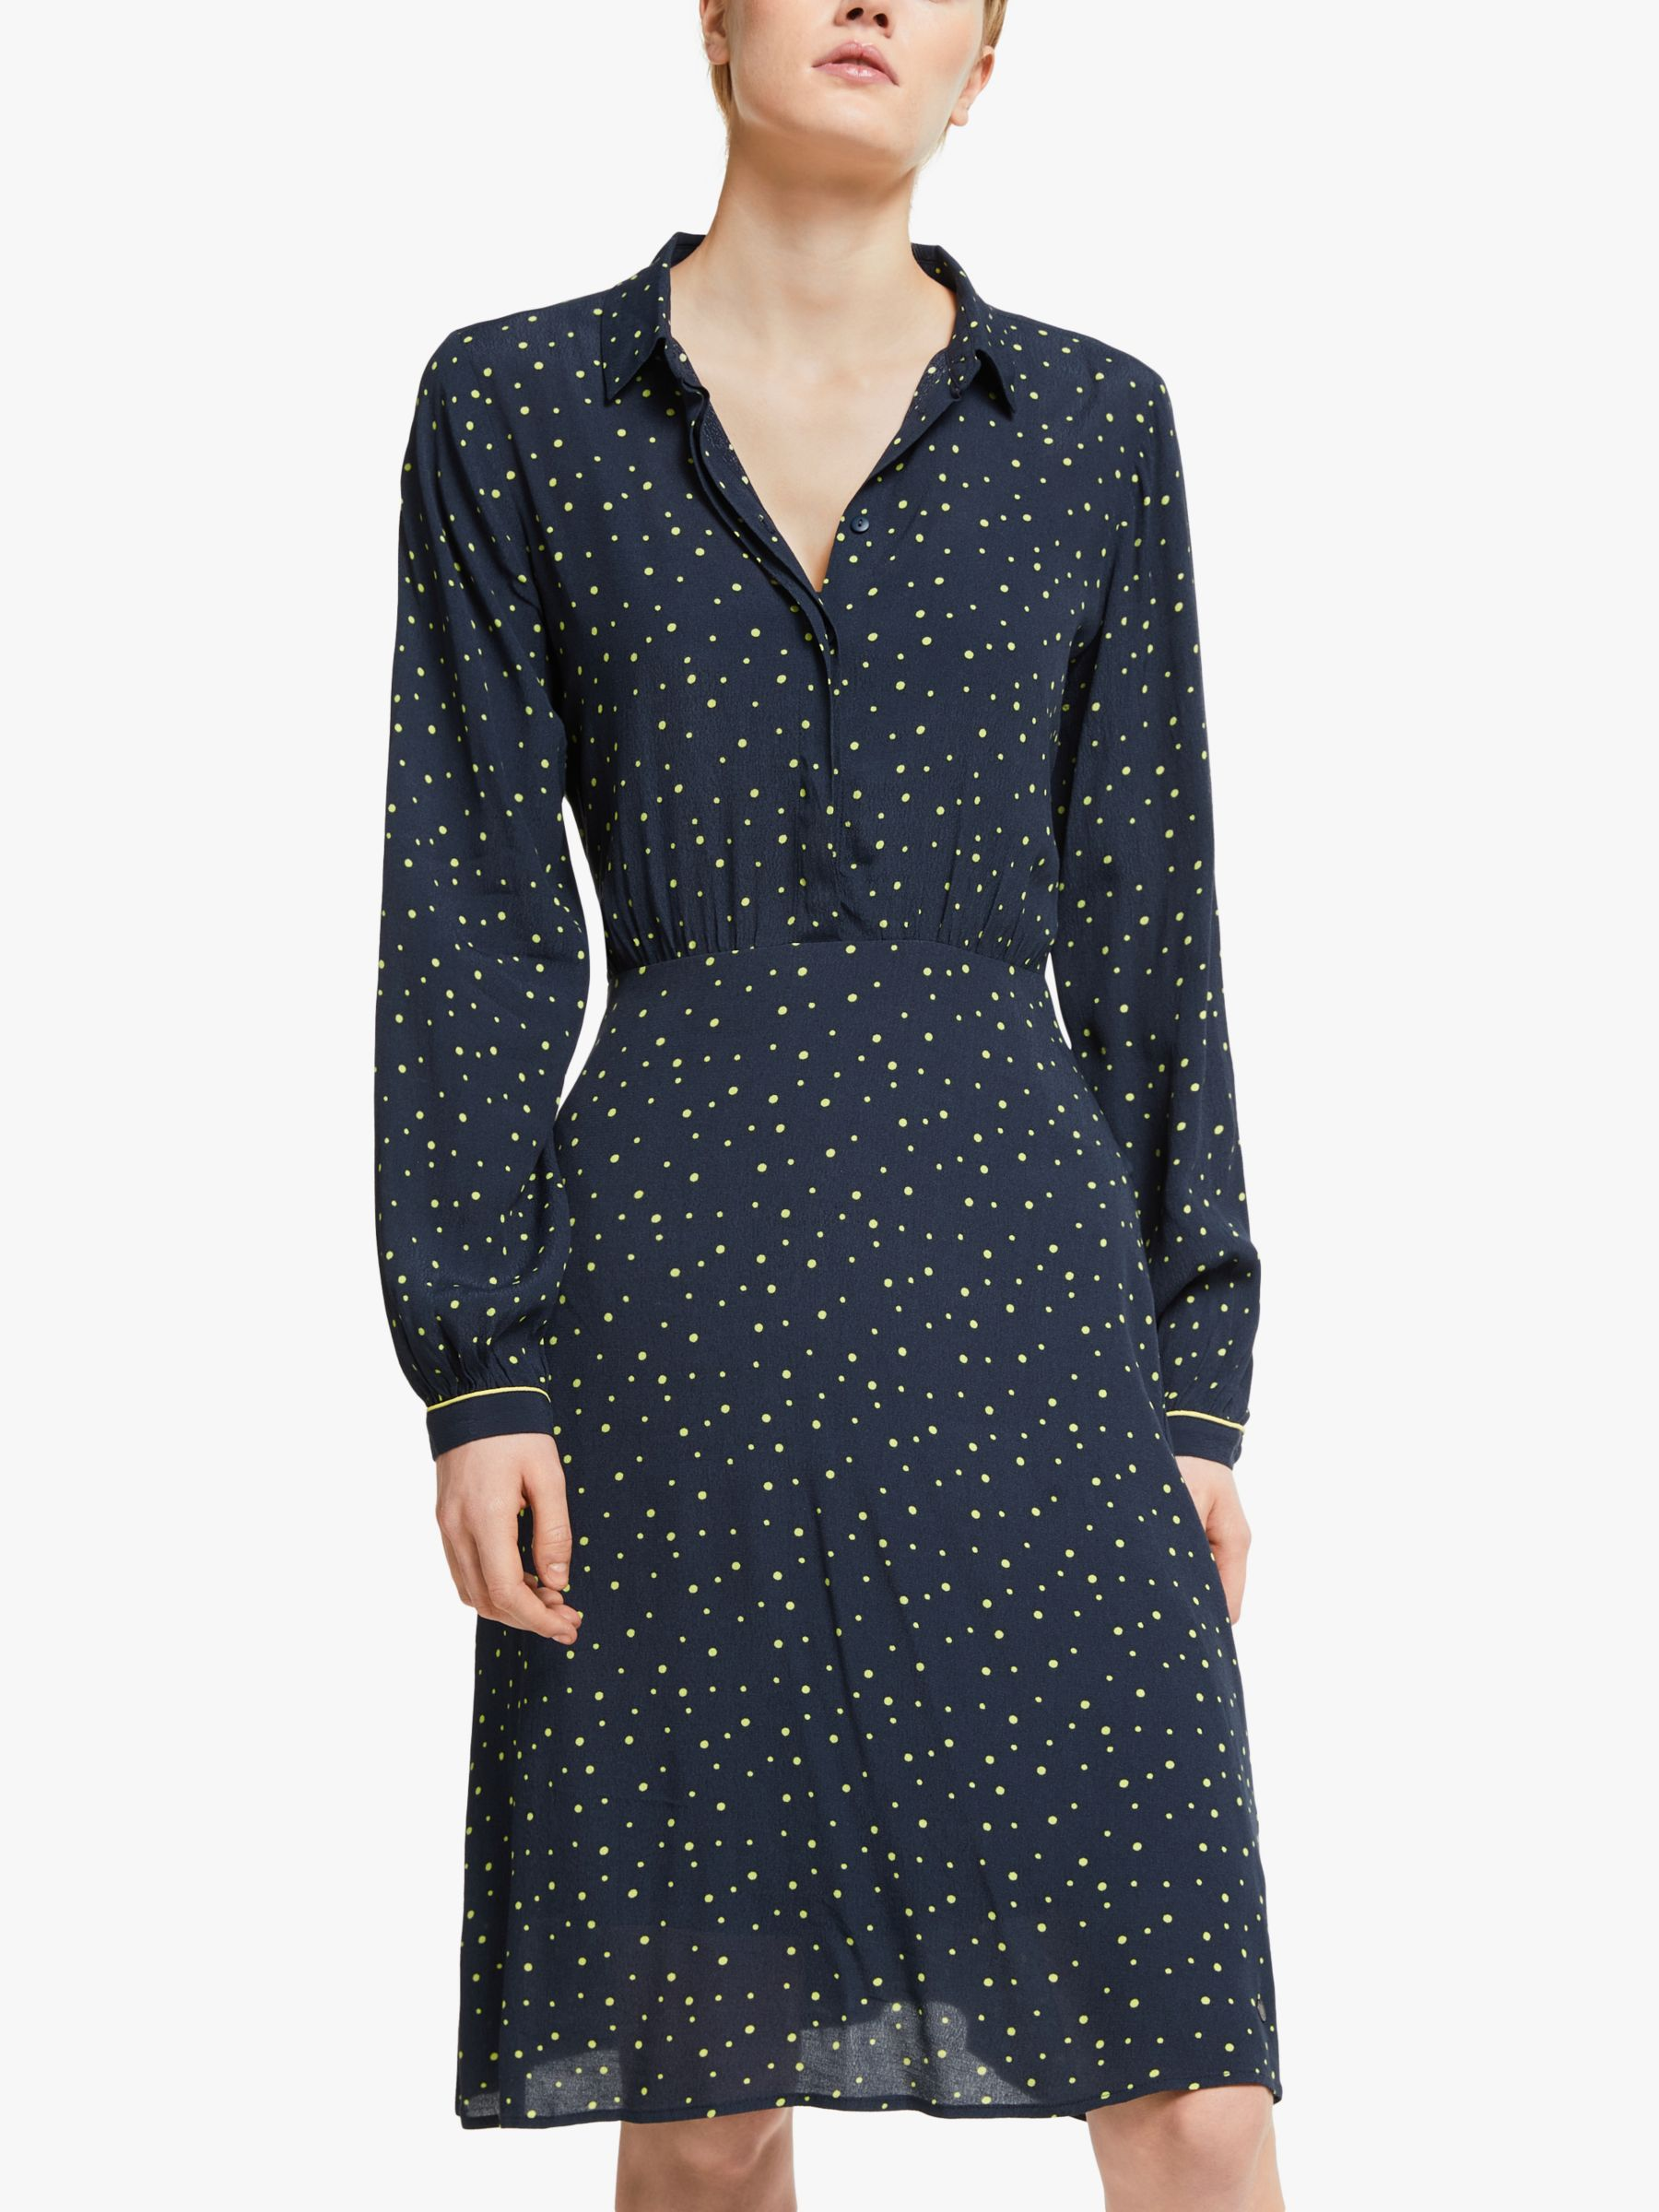 Numph Numph Nuailish Spot Print Shirt Dress, Sapphire